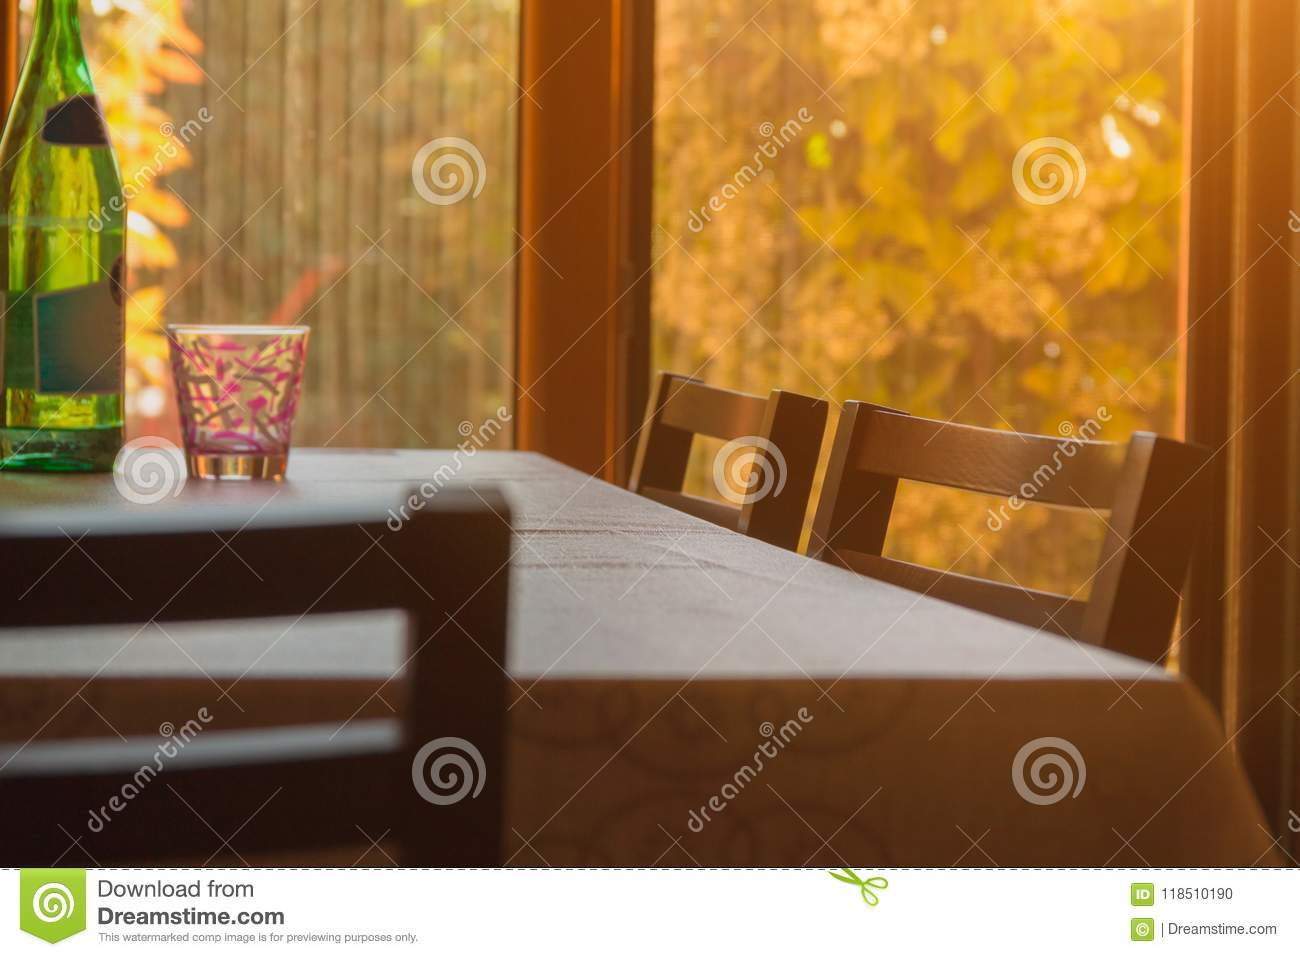 A table with chairs stands in front of a window in which the sun shines, home architecture, home comfort, artistic background